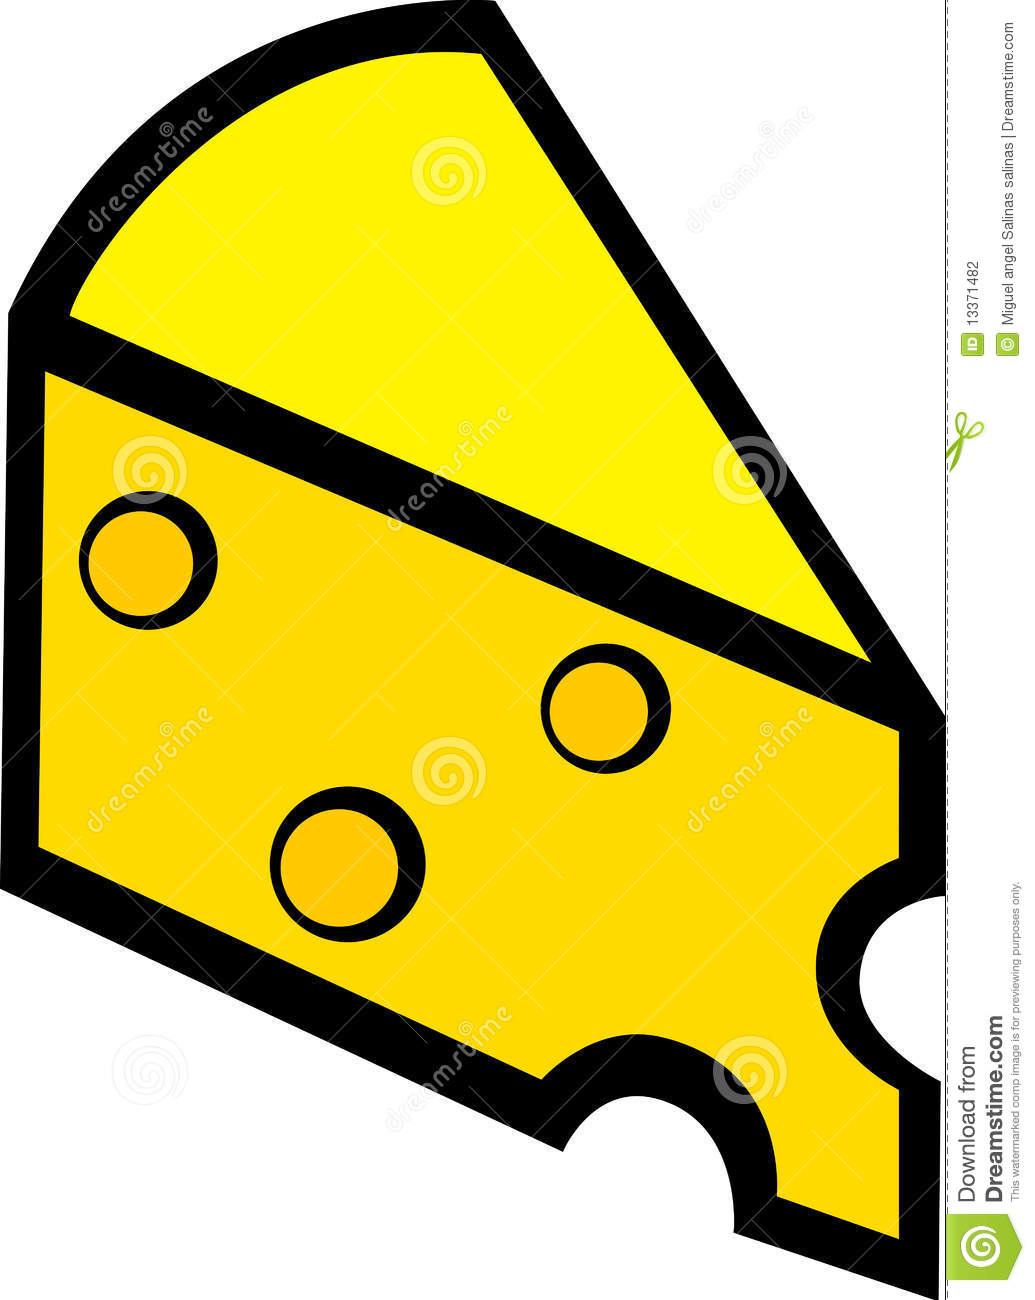 cheese clipart - Clipart Cheese